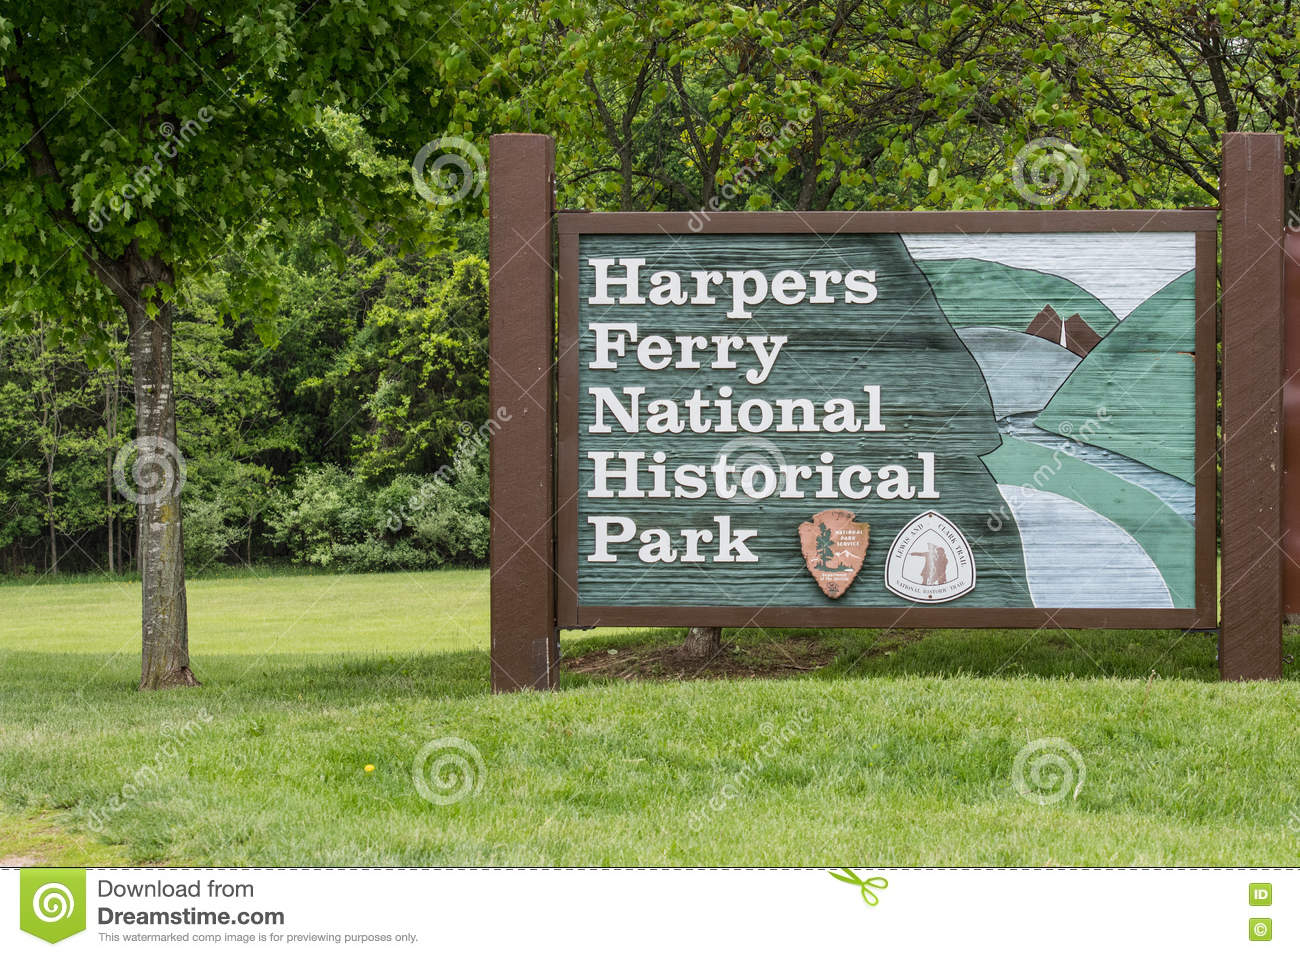 harpers ferry dating site Harpers ferry tent sites river riders campground offers a tent site to fit every need choose from river front sites, trailside and hike in island sites, as well as deluxe tent sites.